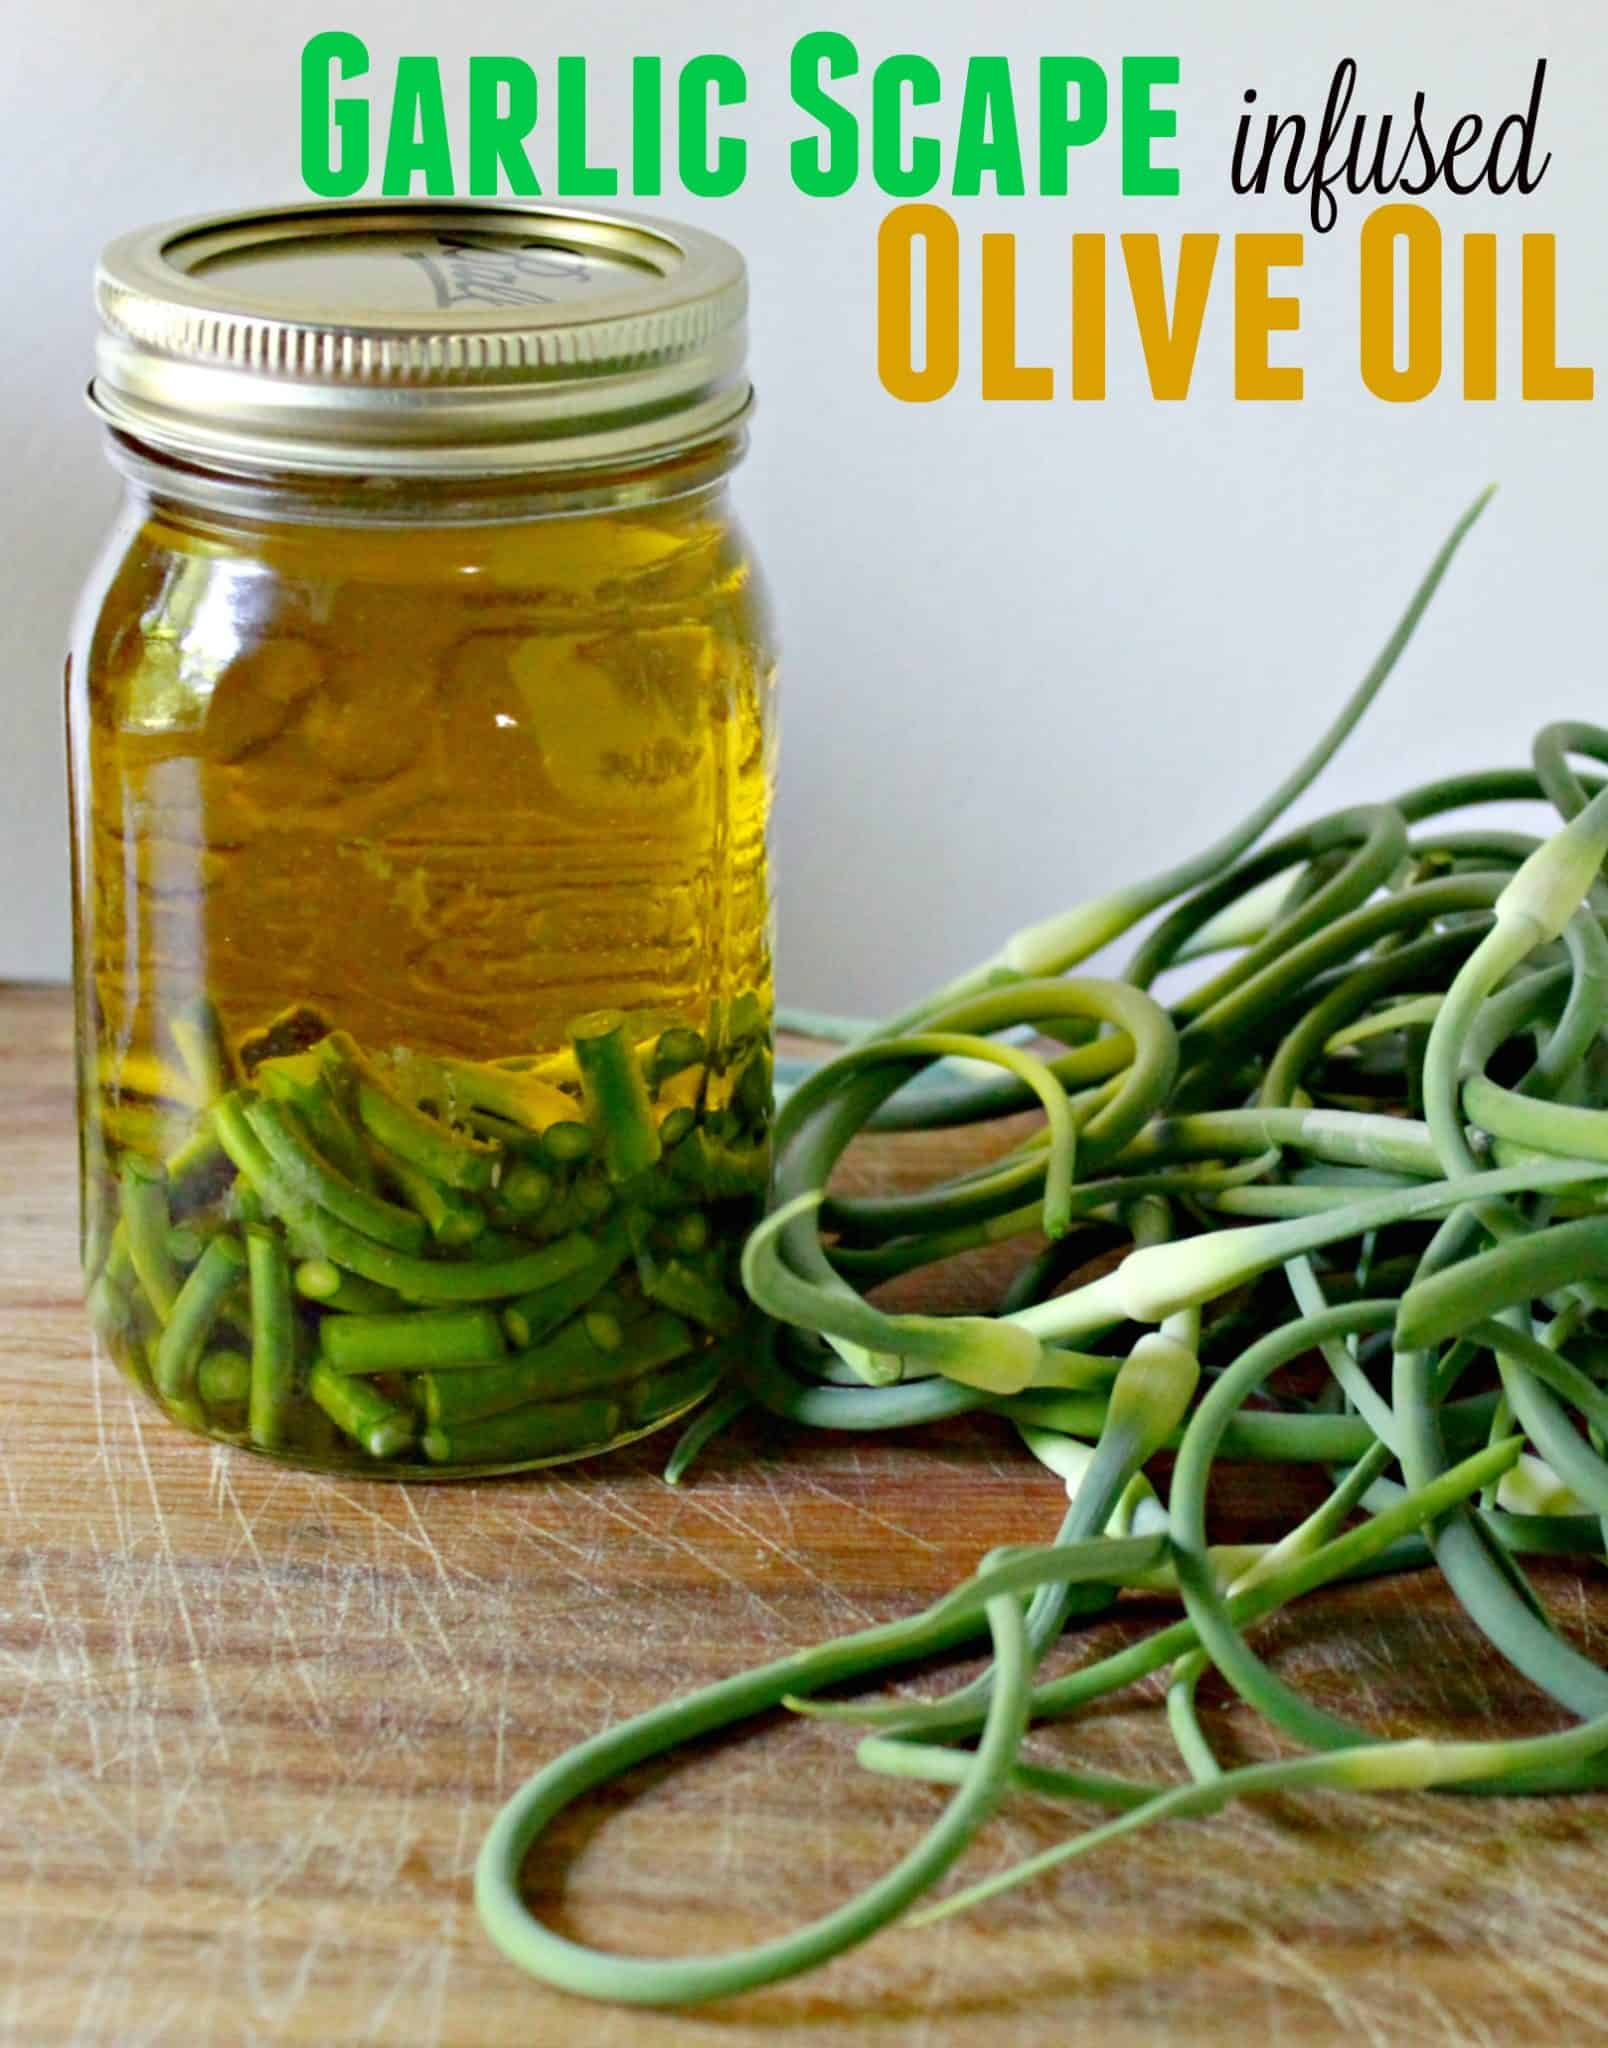 How to preserve garlic scapes - Garlic scape infused olive oil